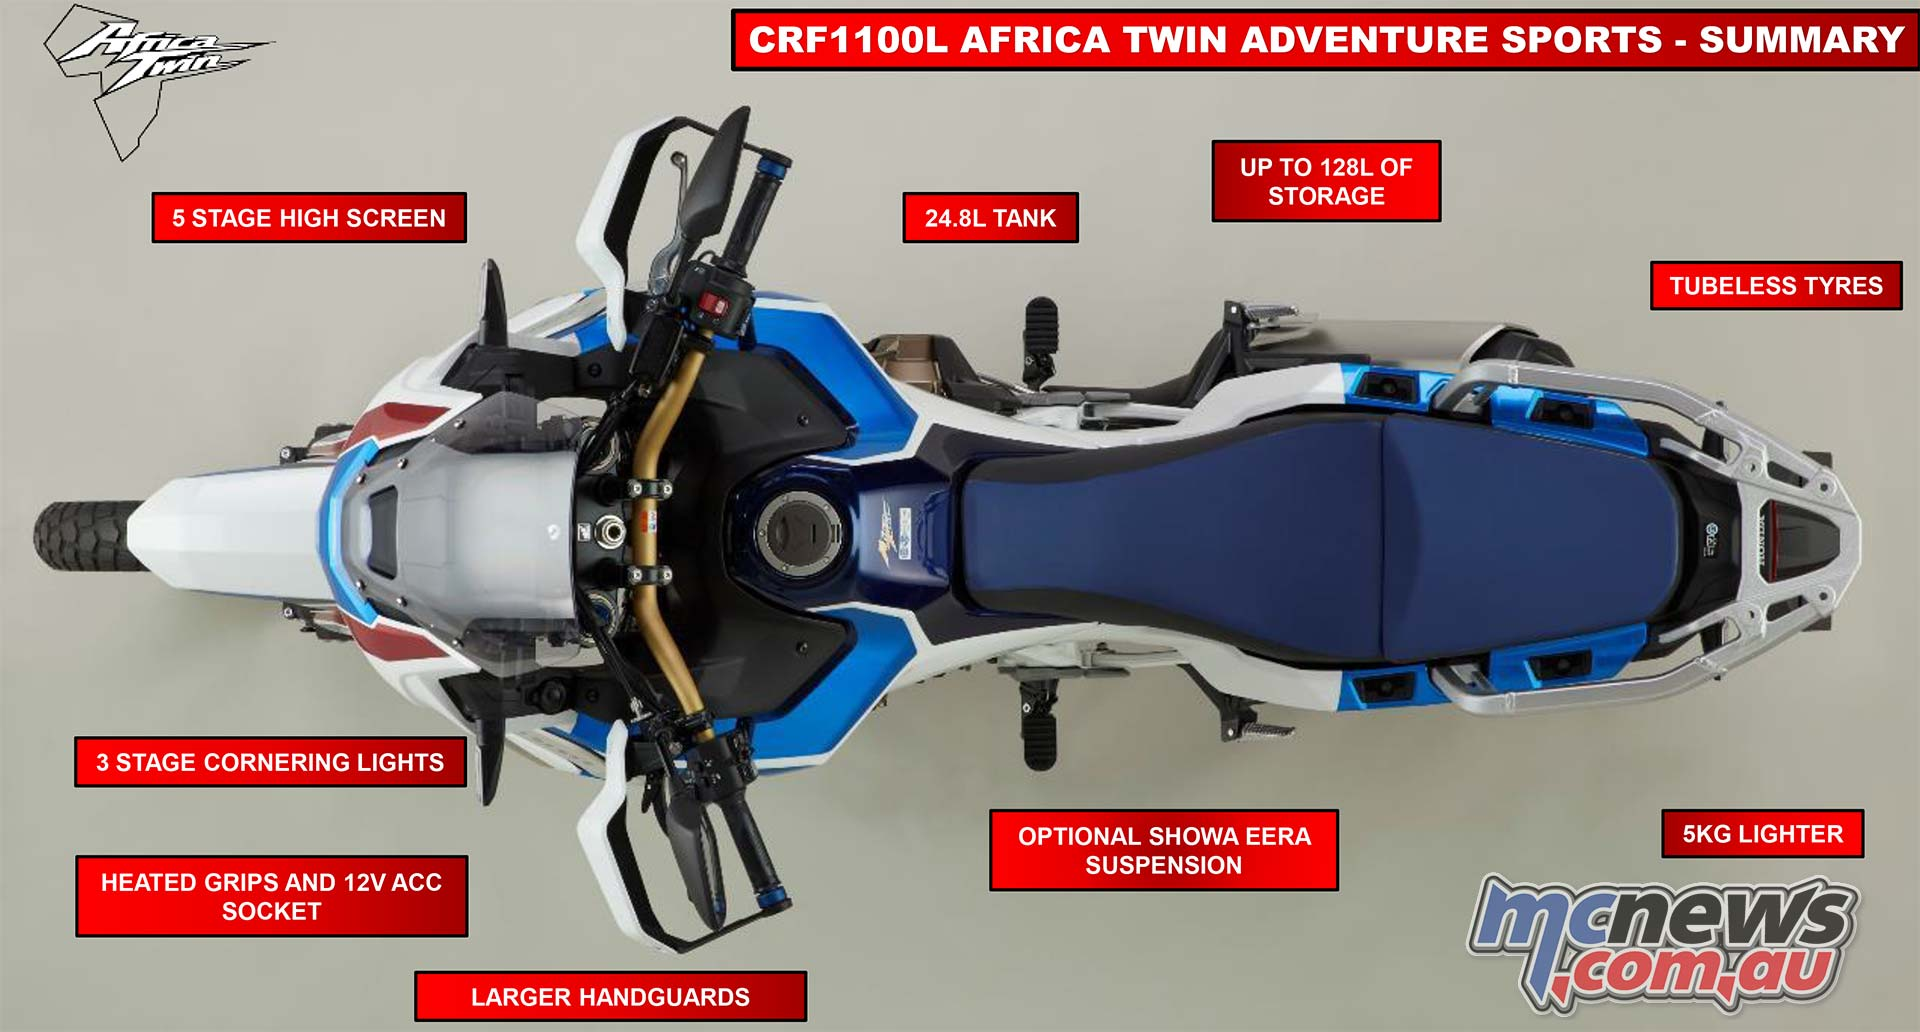 CRFL Africa Twin and Africa Twin Adv Sports Features